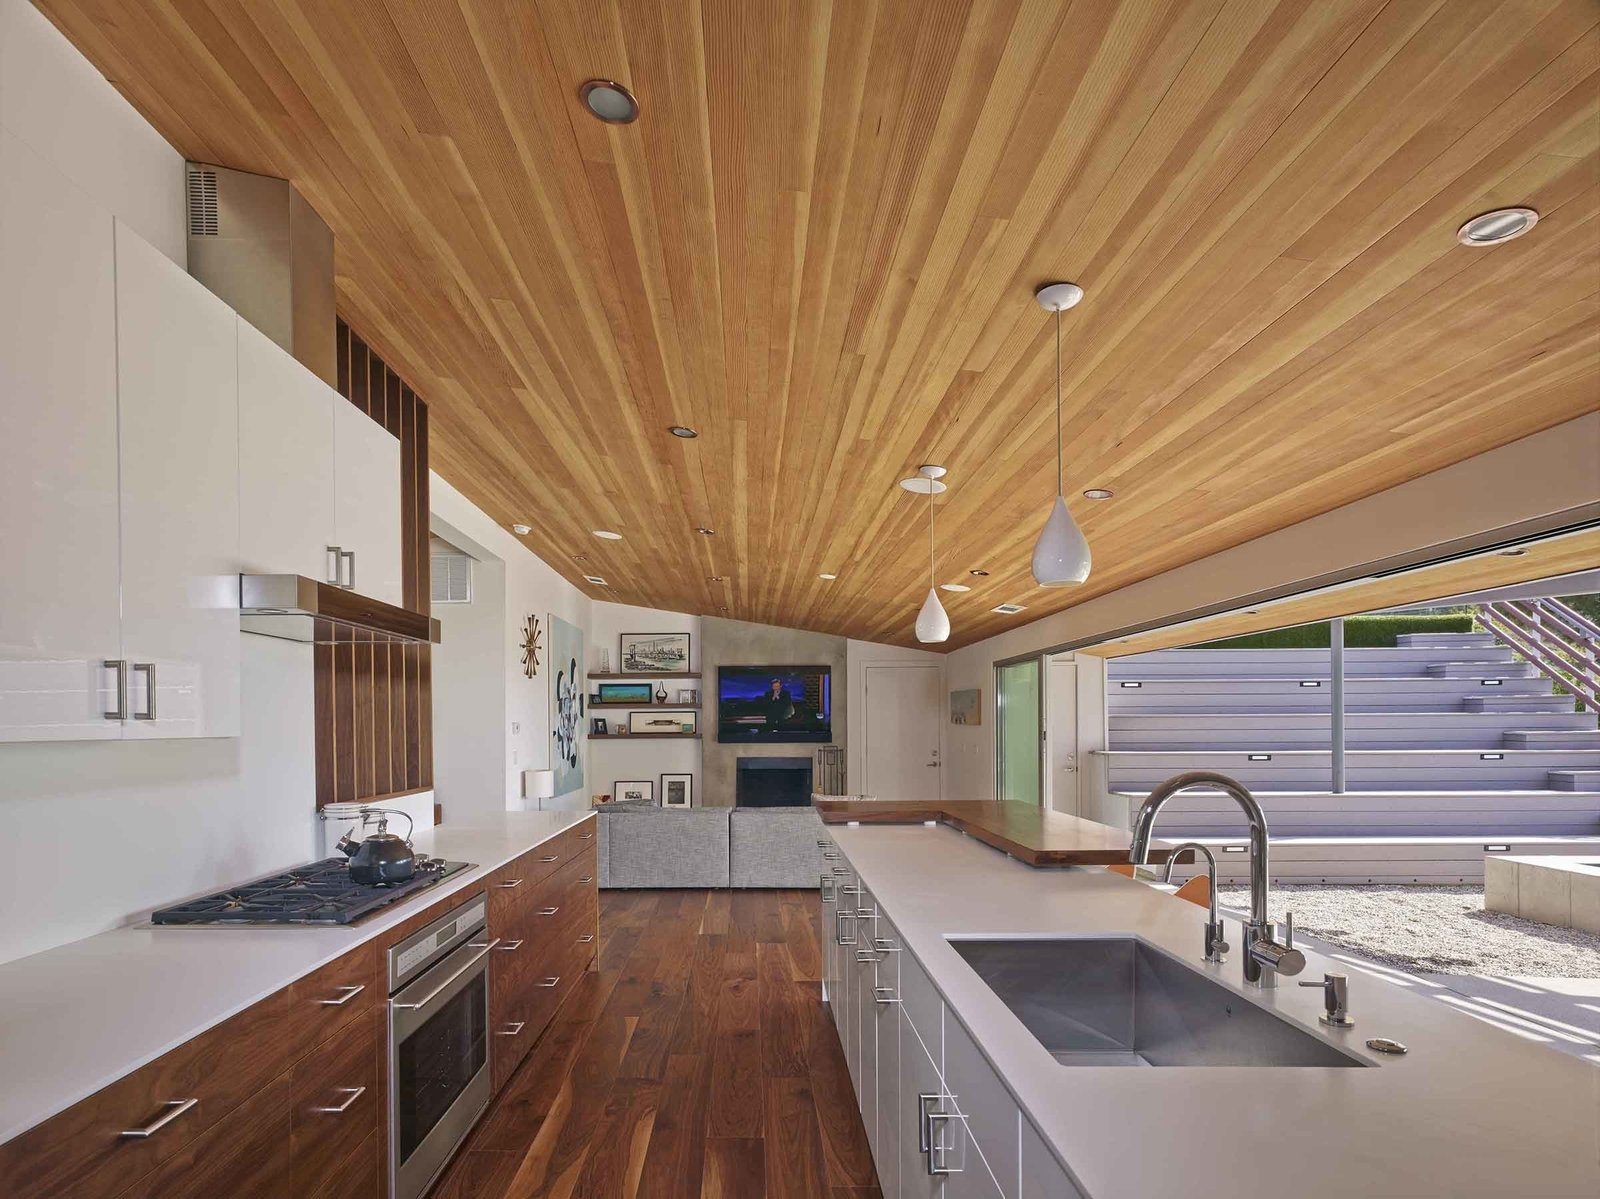 """""""By removing a few interior walls, reconfiguring a couple of others and opening up the kitchen/living/dining areas, we were left with a wonderfully livable floor plan with a great balance of public and private space,"""" says Southerland. A large, open galley style kitchen and mirrored planes of wall paneling visually expand the home's interior perspective."""